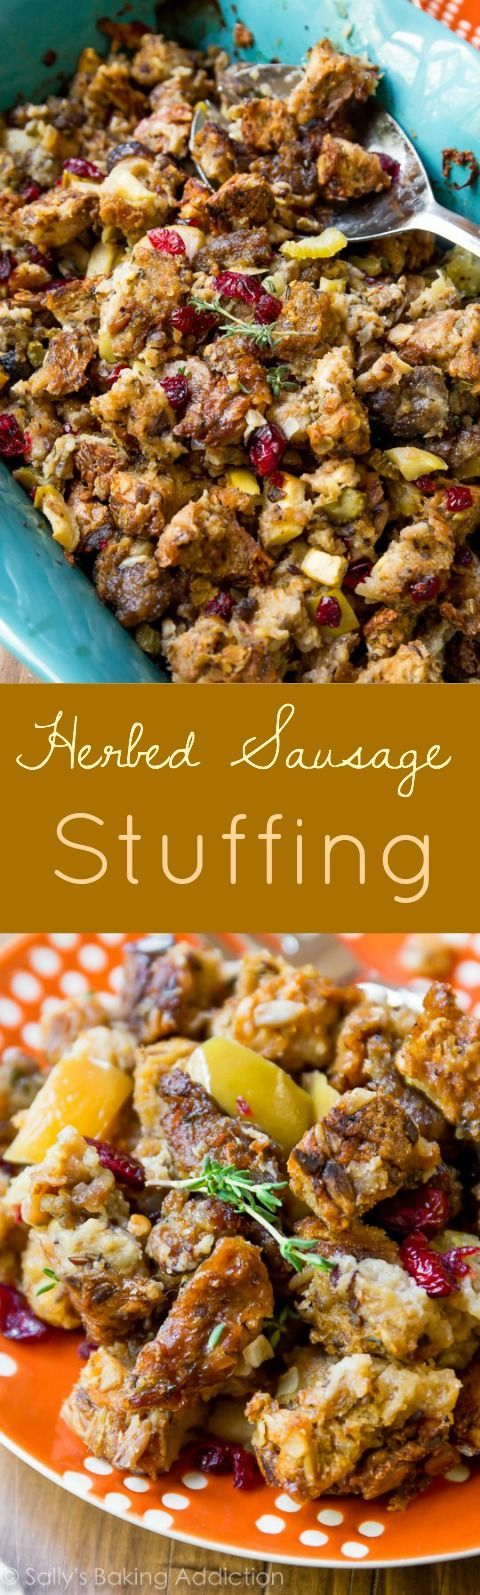 Herbed Sausage and Apple Stuffing | Sally's Baking Addiction